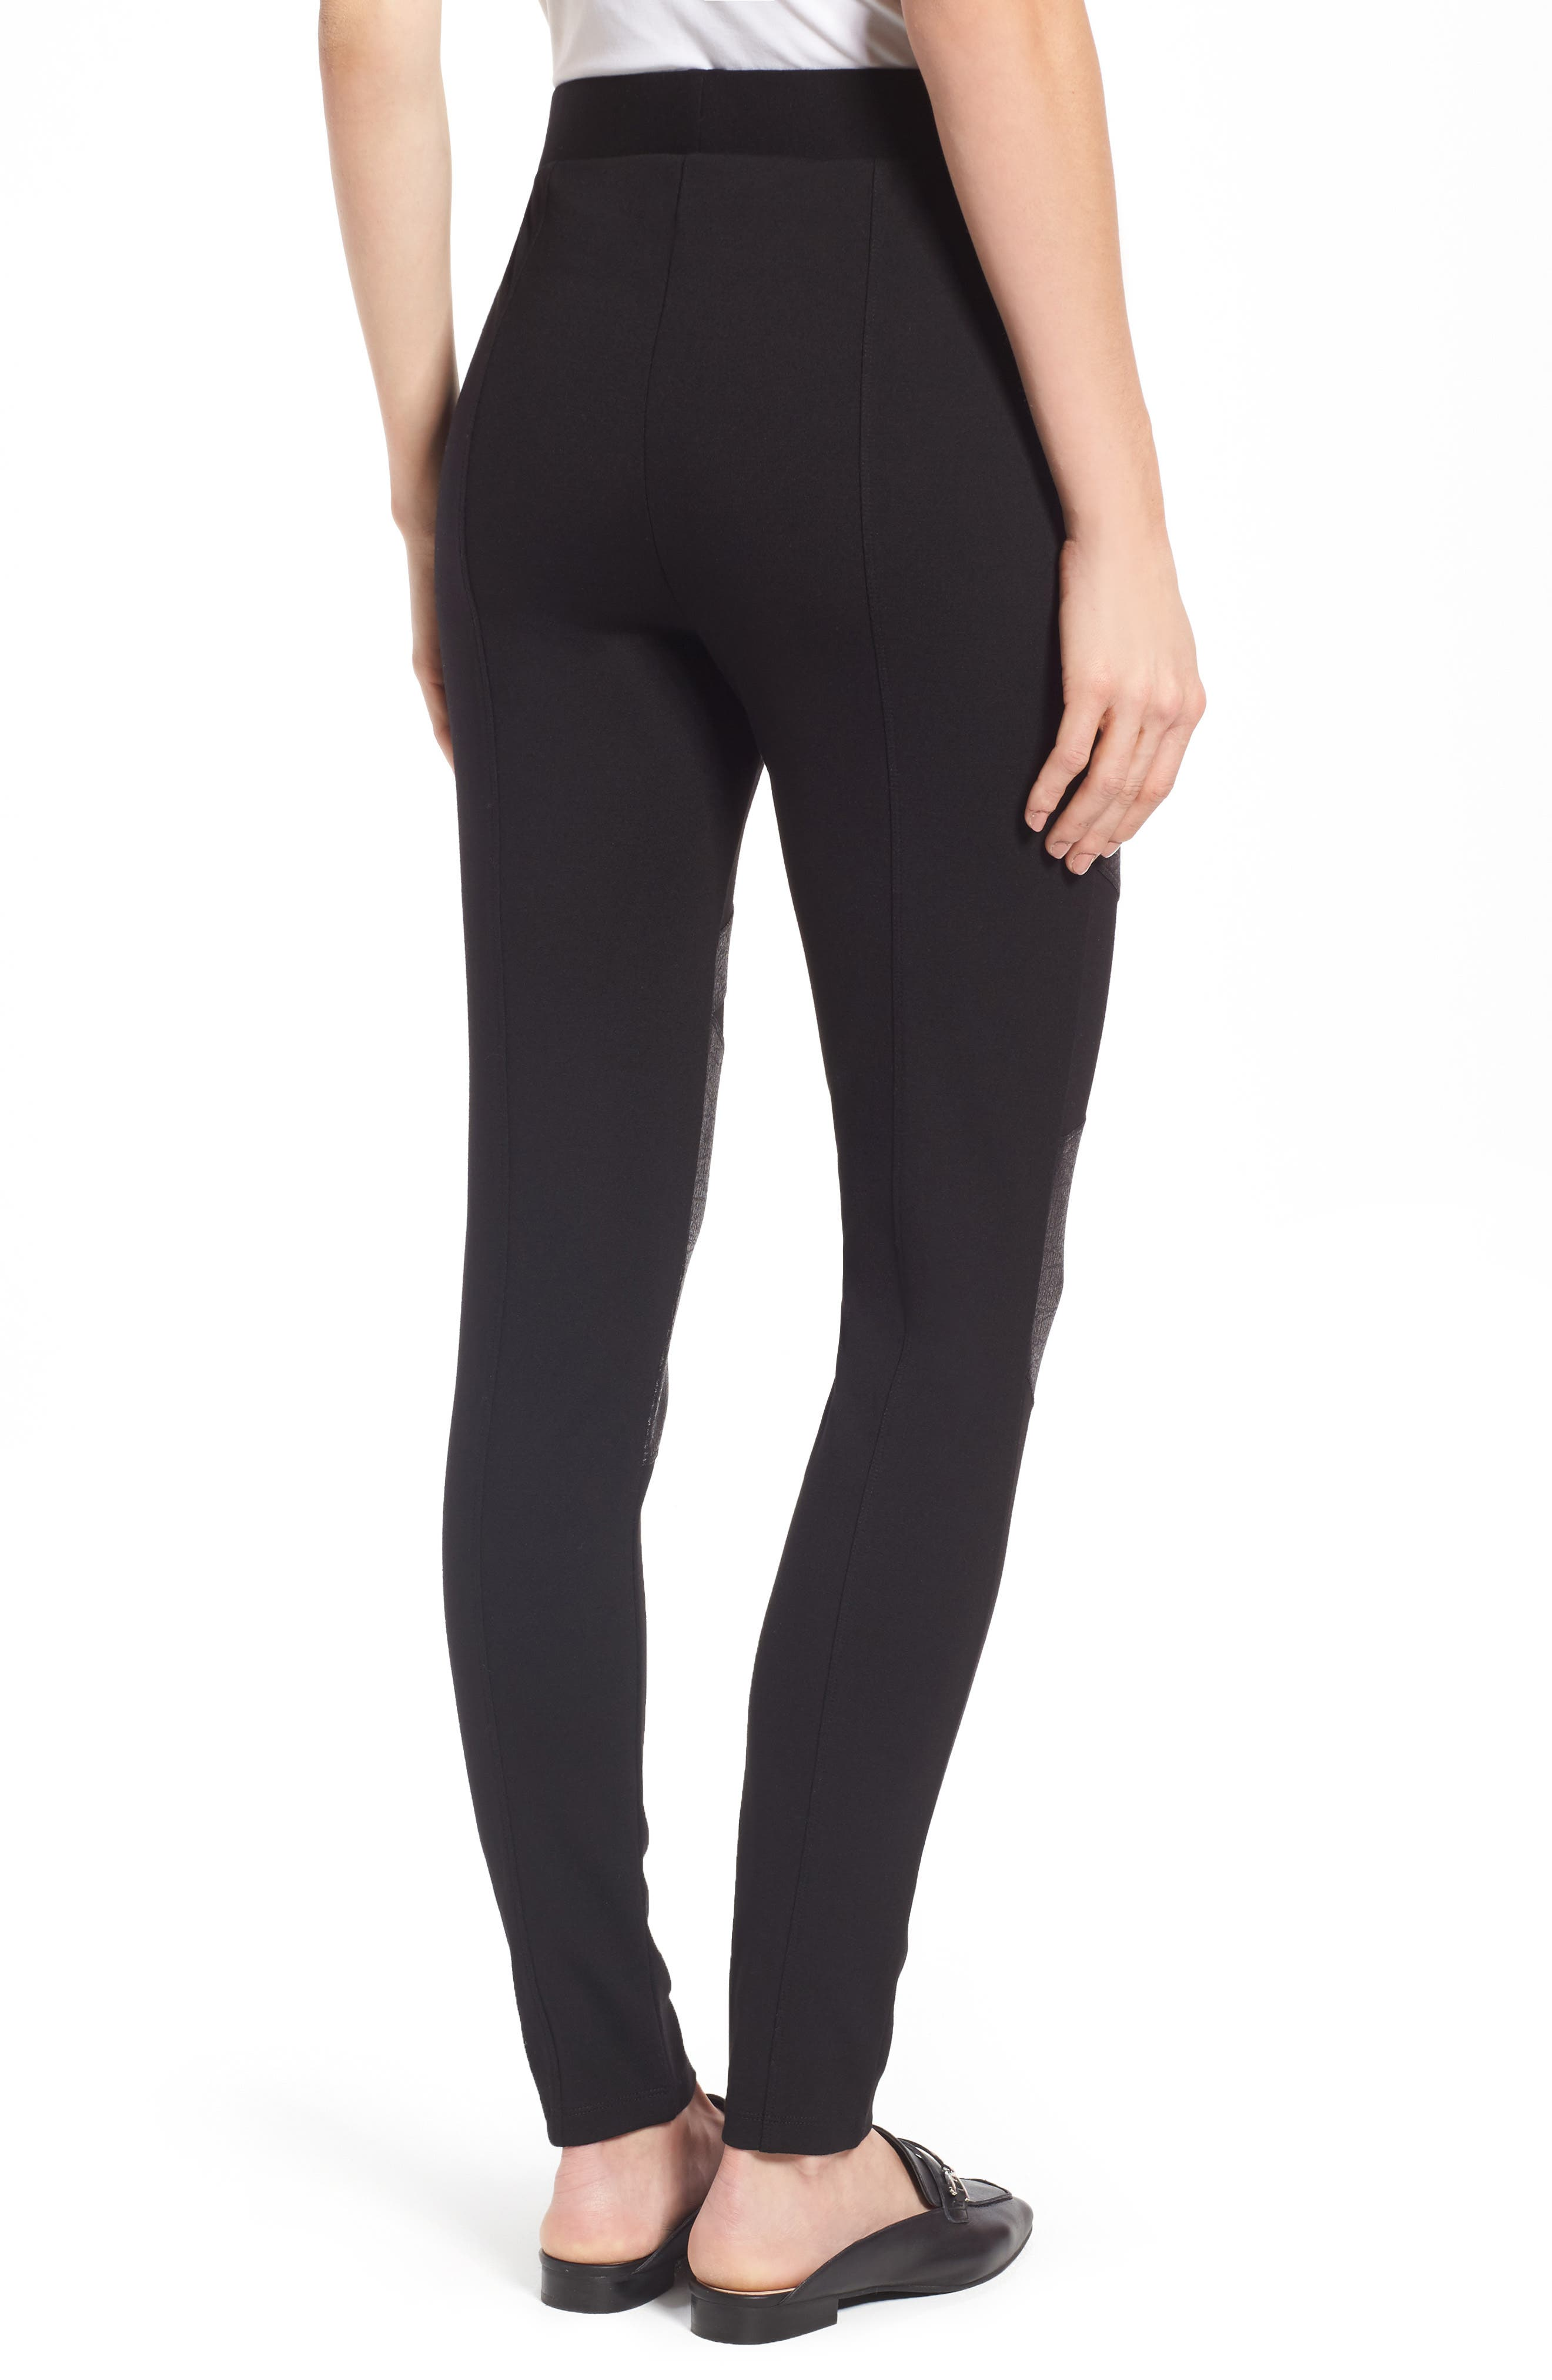 Alternate Image 2  - Two by Vince Camuto Lacquer Inset Moto Leggings (Regular & Petite)